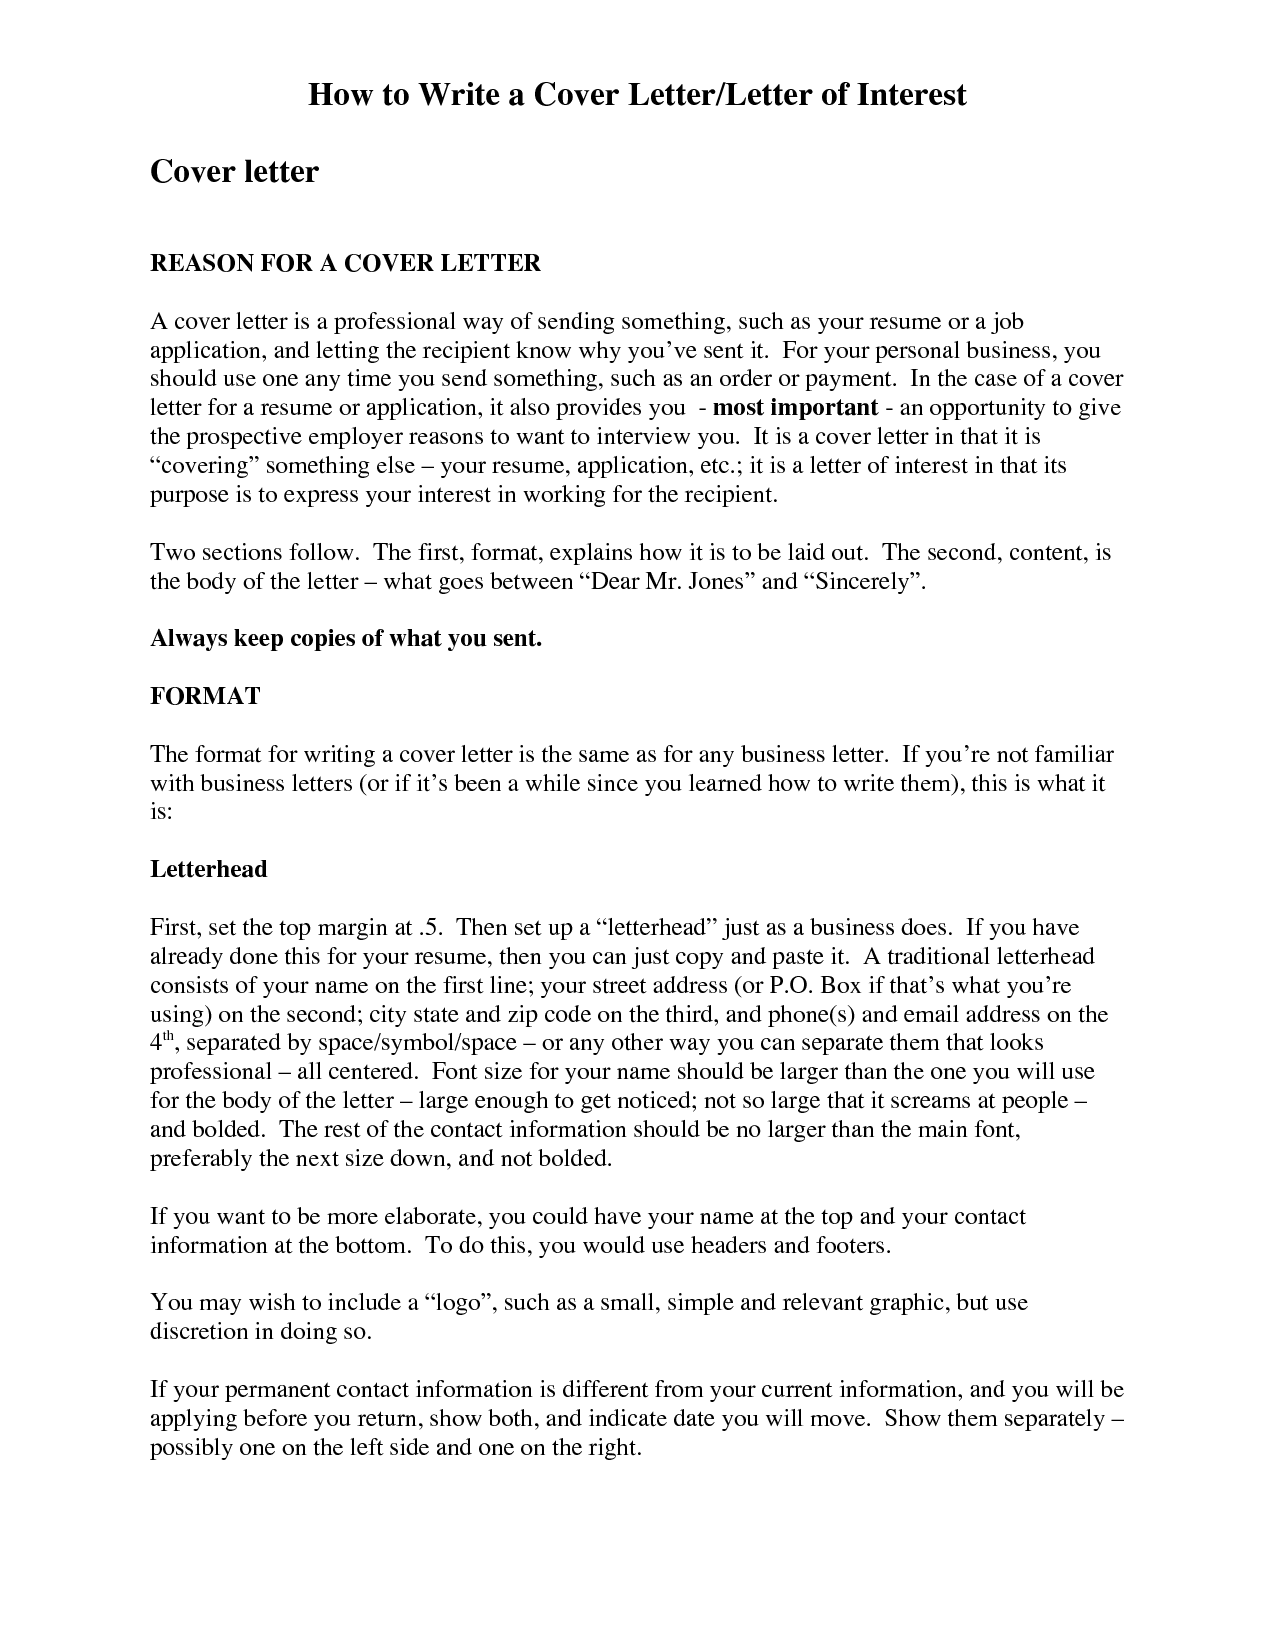 How to write a cover letter of interest example for a job for How to right a covering letter